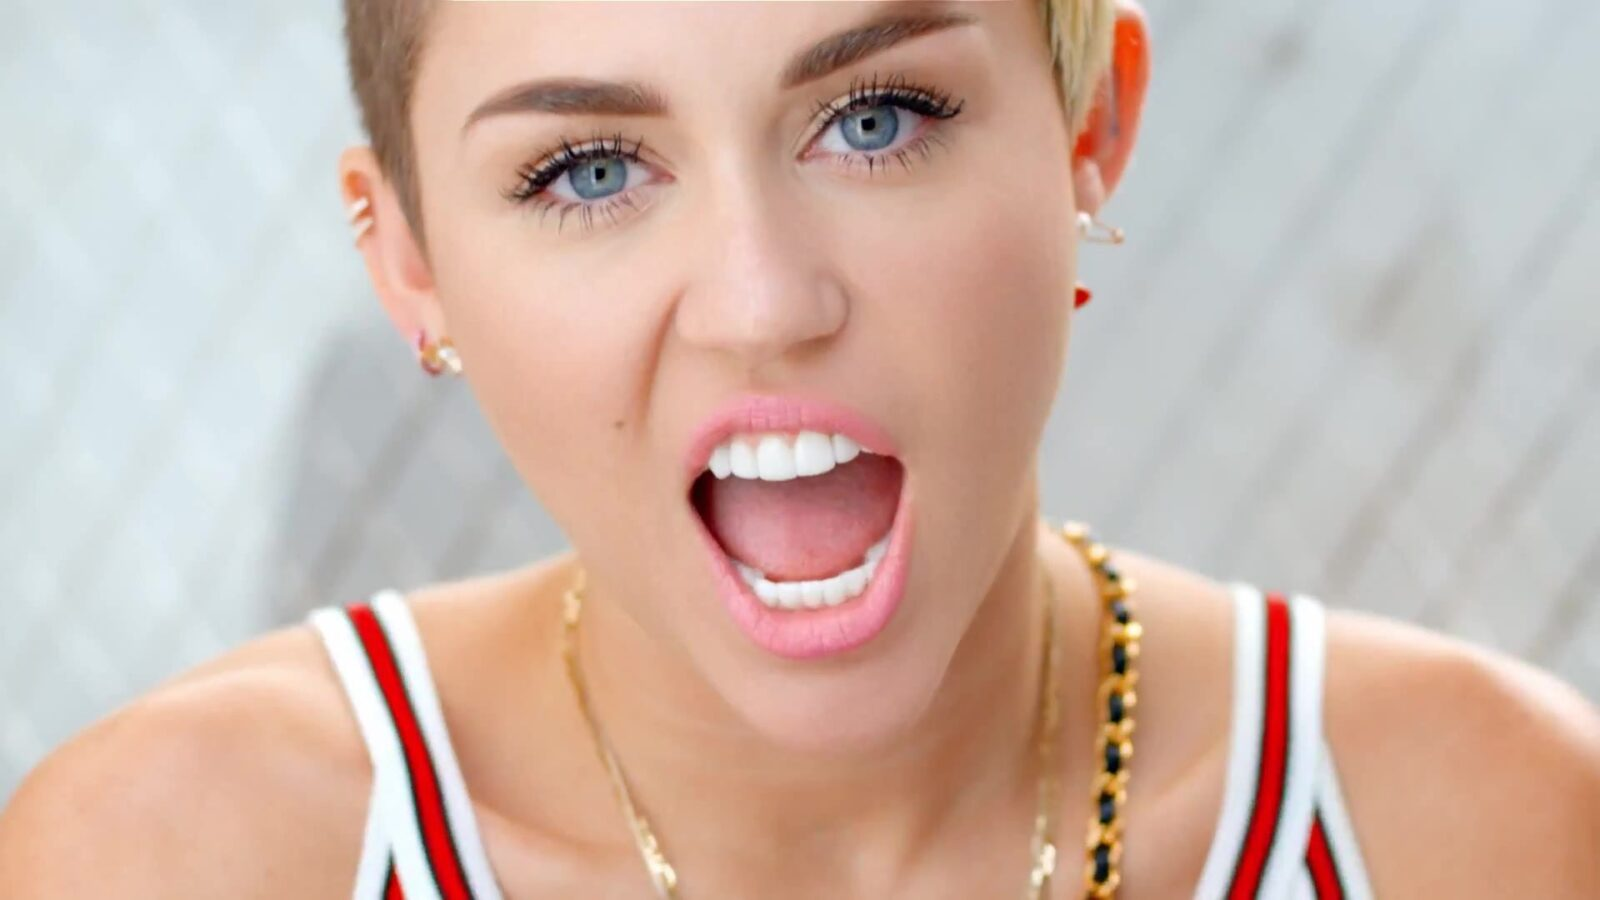 Miley Cyrus eyes makeup High Quality